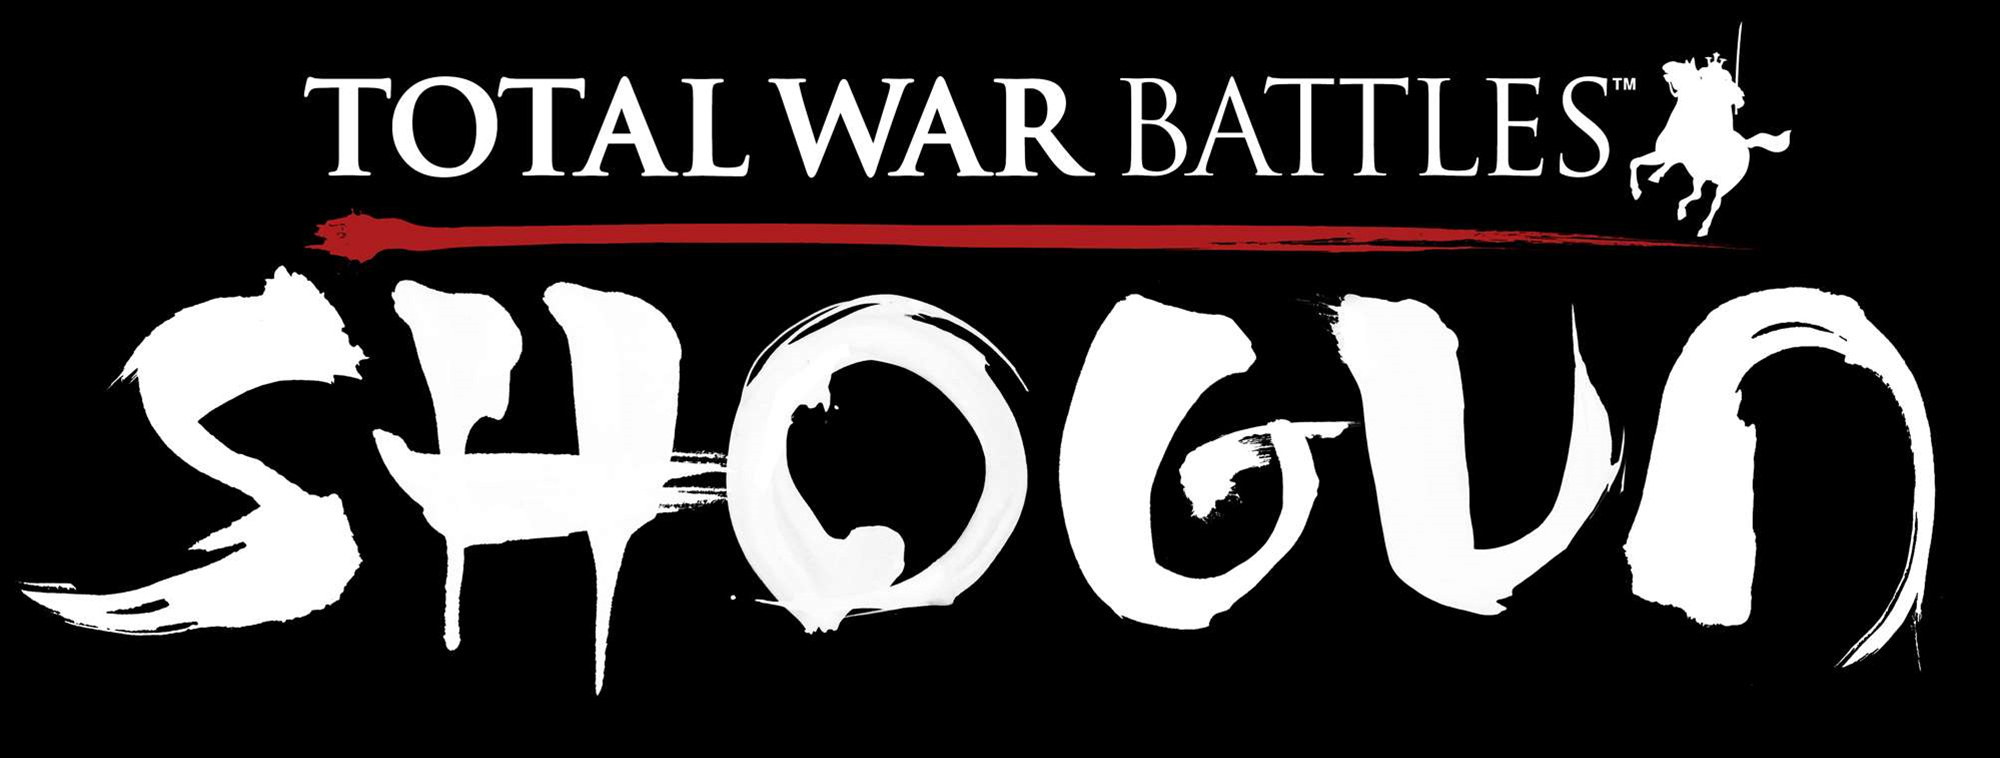 Total War Battles: Shogun coming to a mobile device near you!